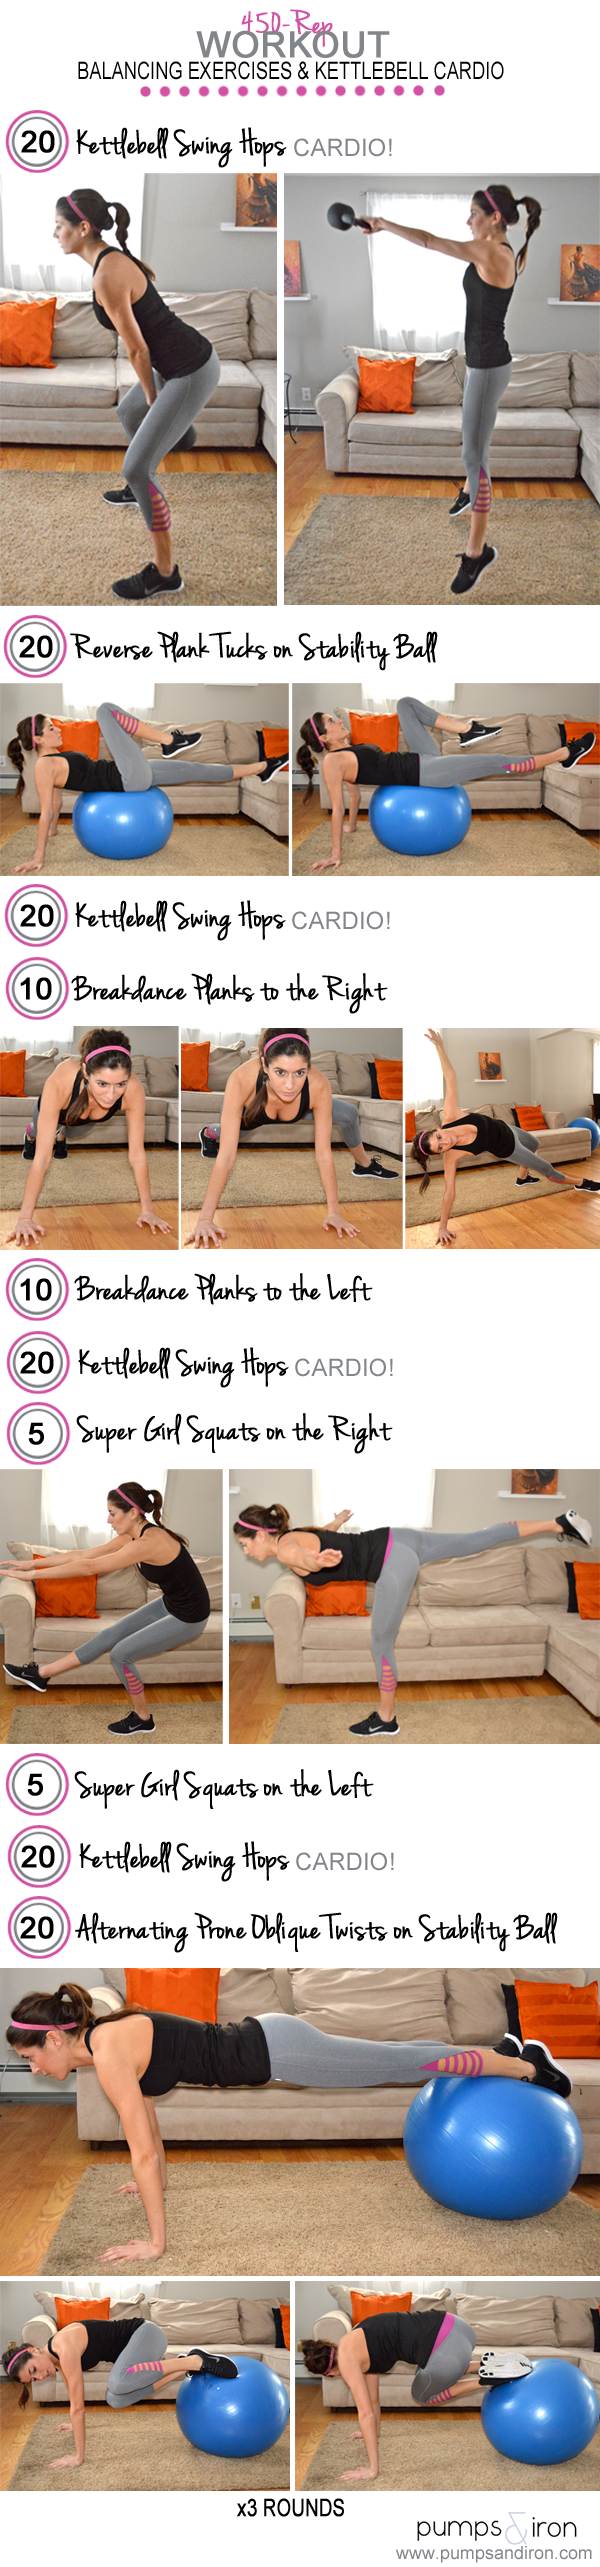 450-Rep Workout (All Pinterest Exercises!) | Healthy & Fit ...